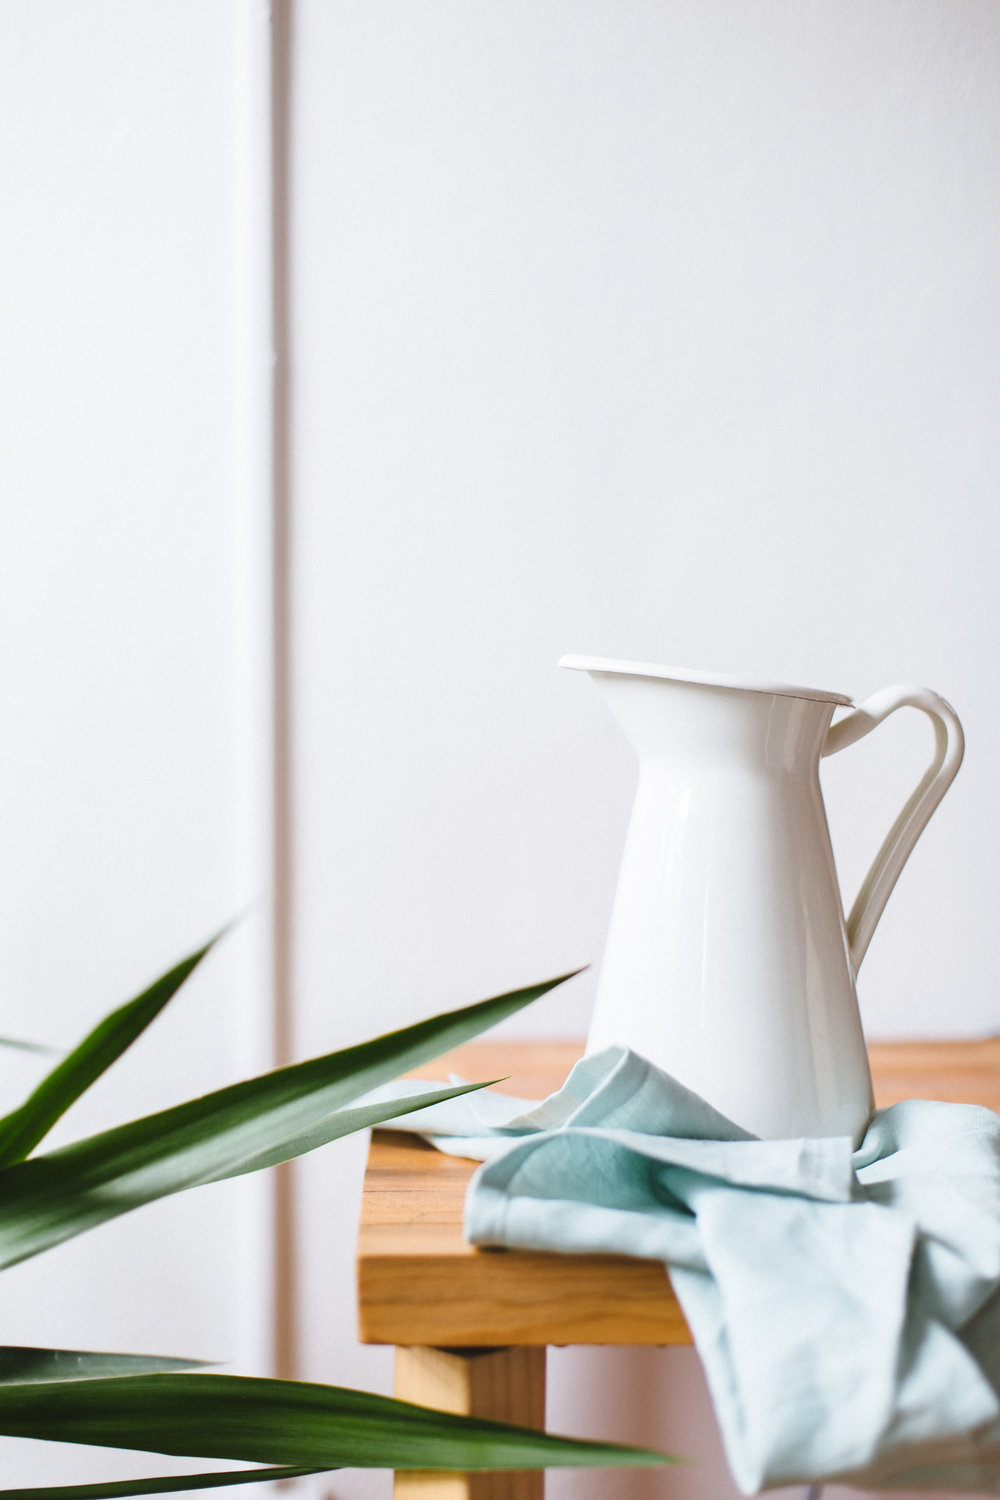 Indoor plant ownership has many benefits - Here is a summary of three of the most important houseplant benefits in case you weren't aware of them.